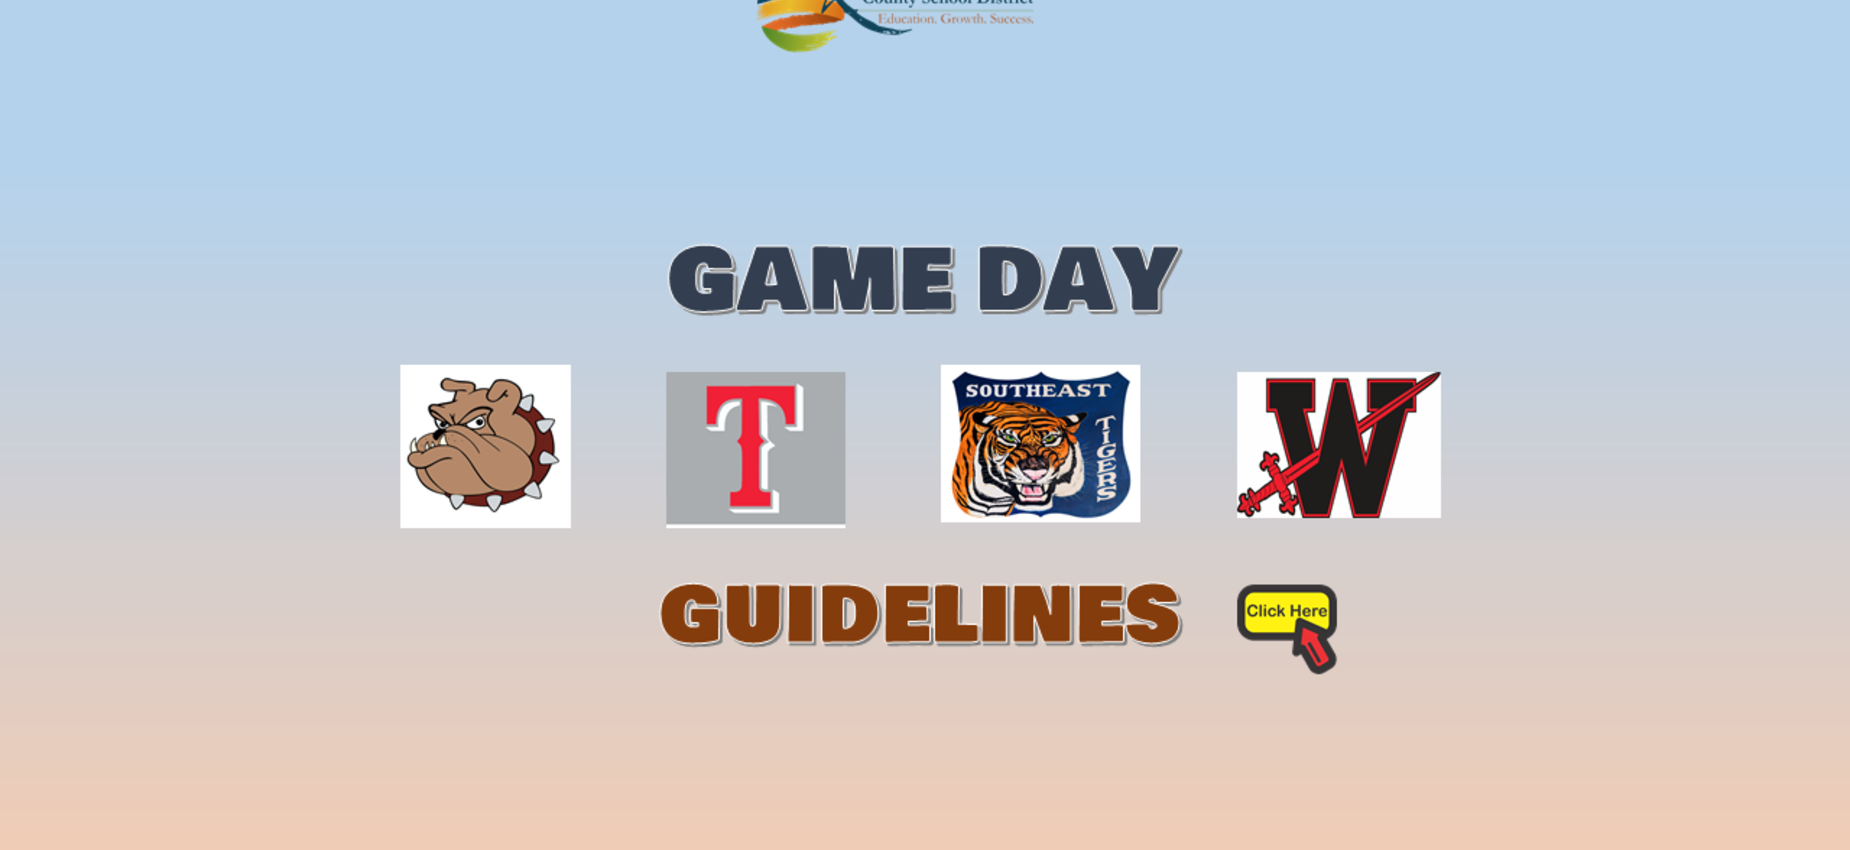 Game Day Guidelines Graphic